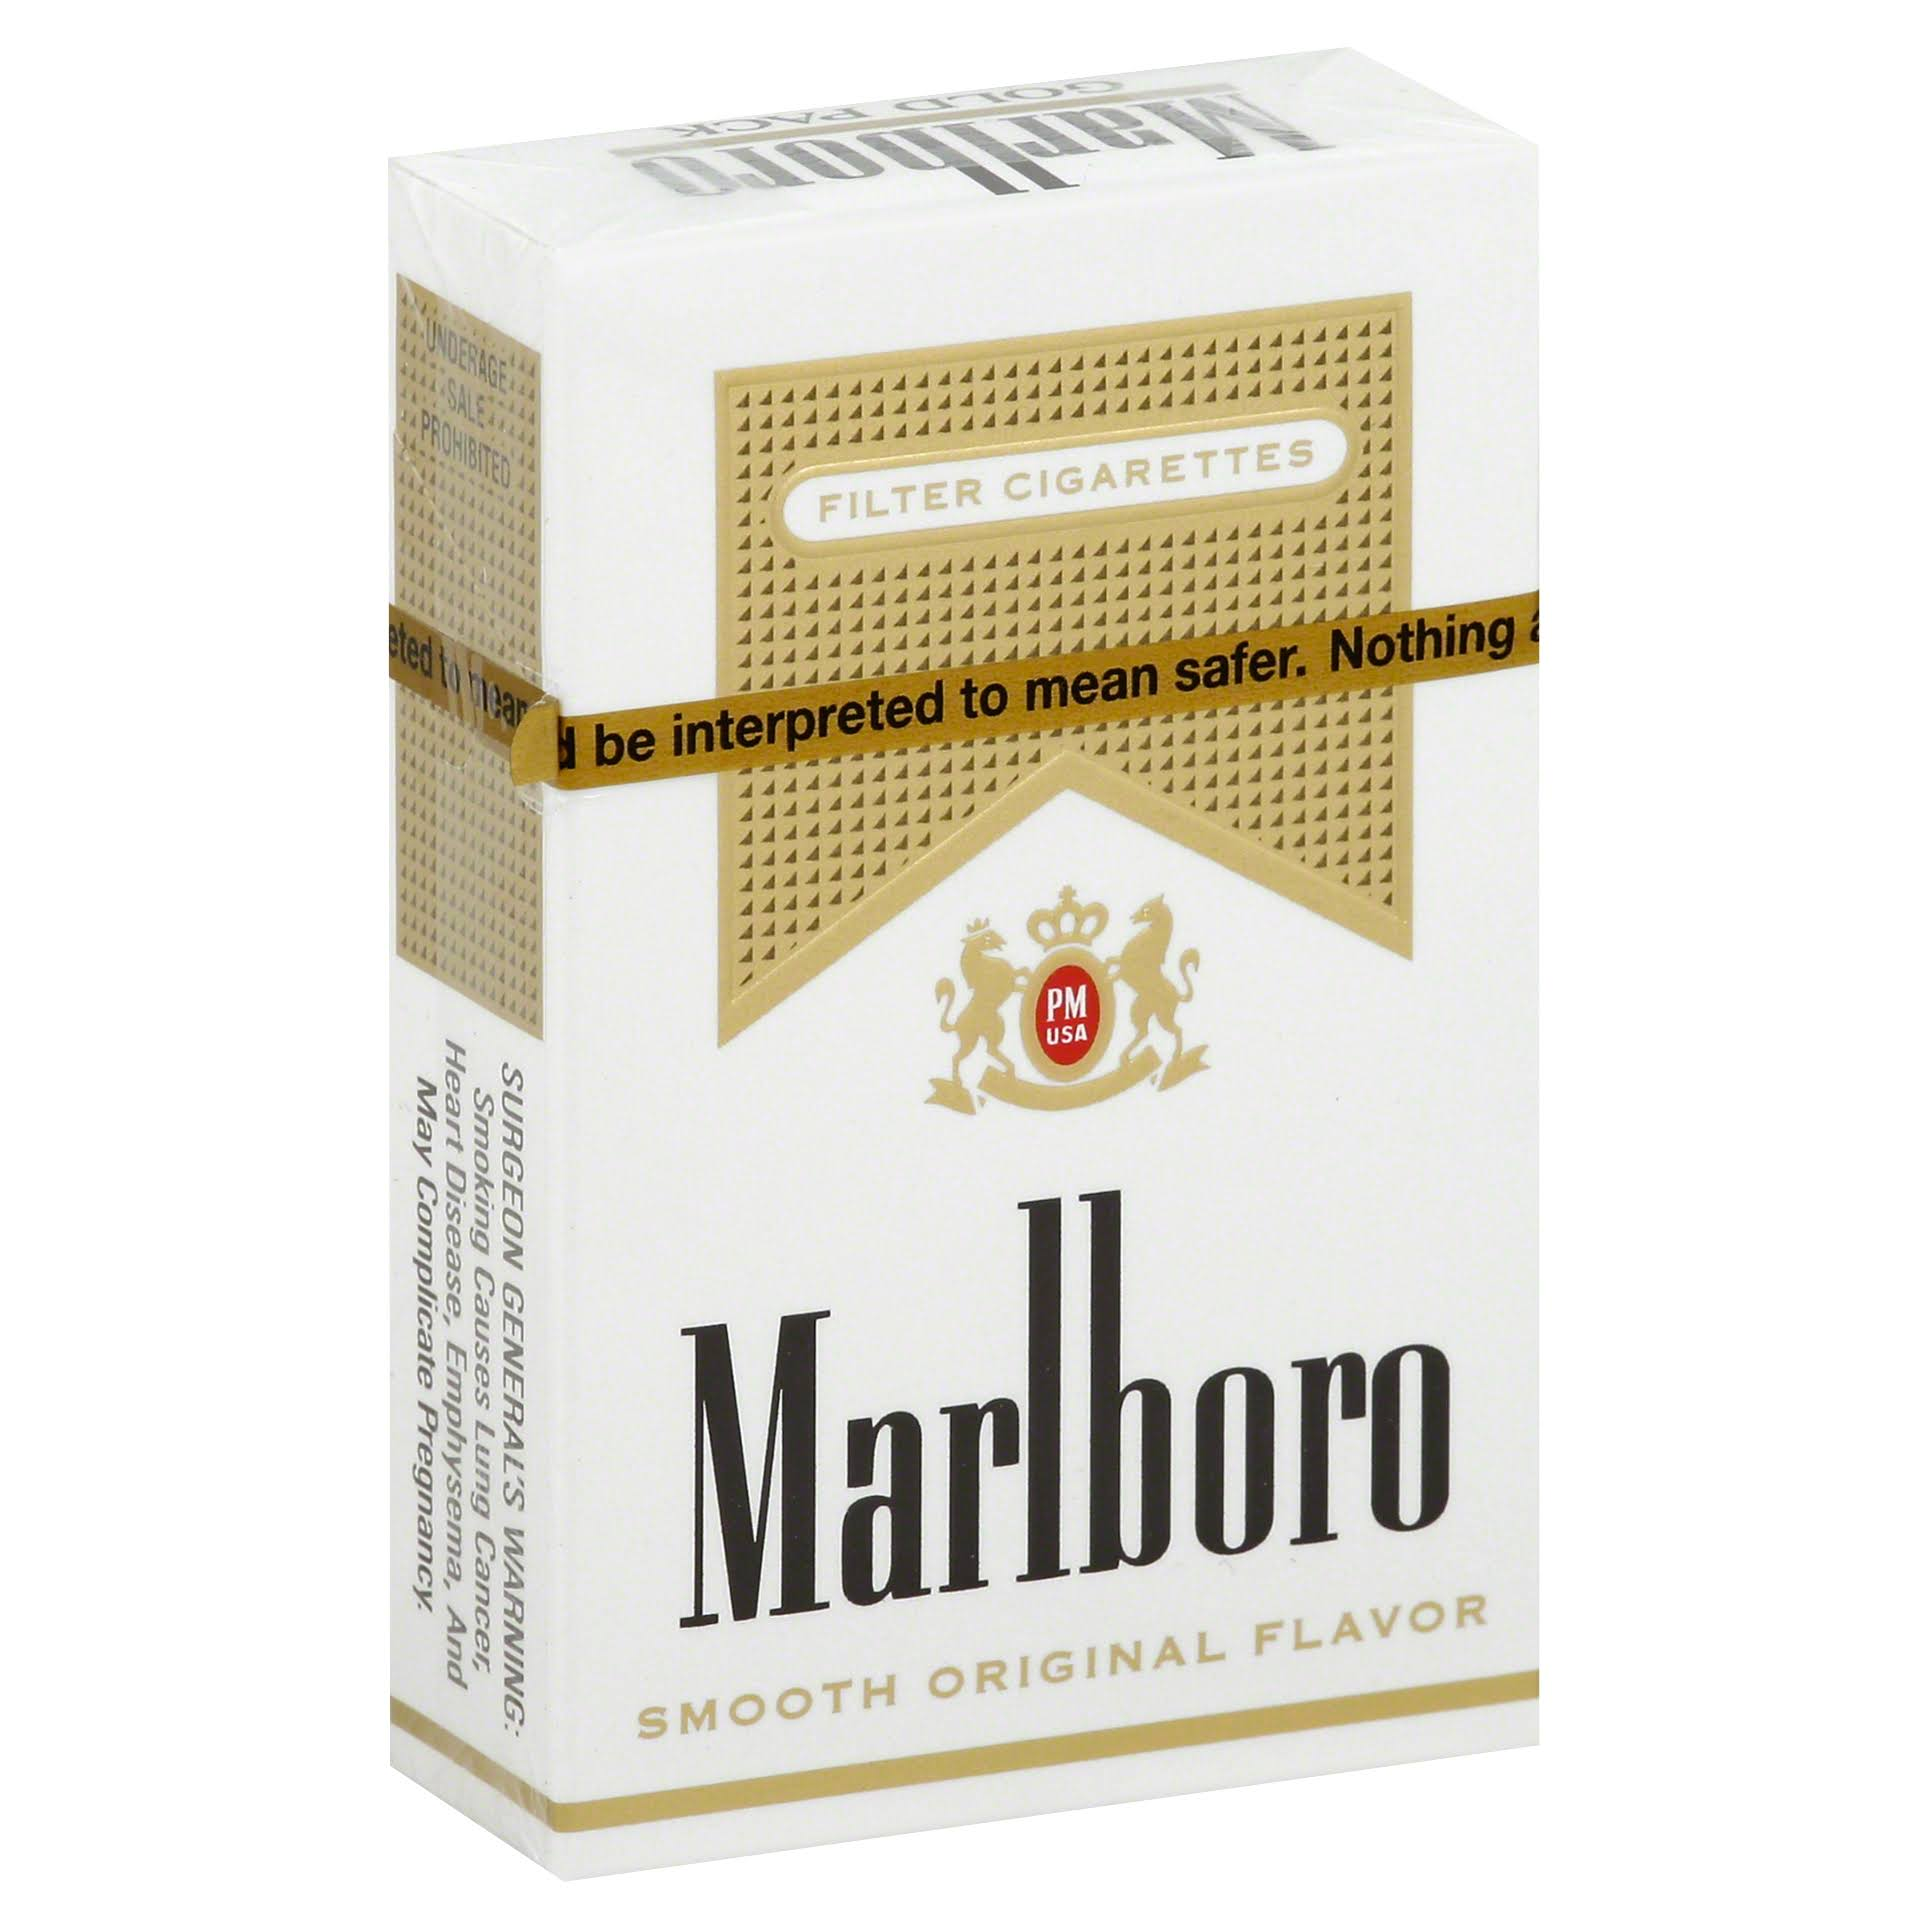 Marlboro Cigarettes, Filter, Gold Pack - 20 cigarettes